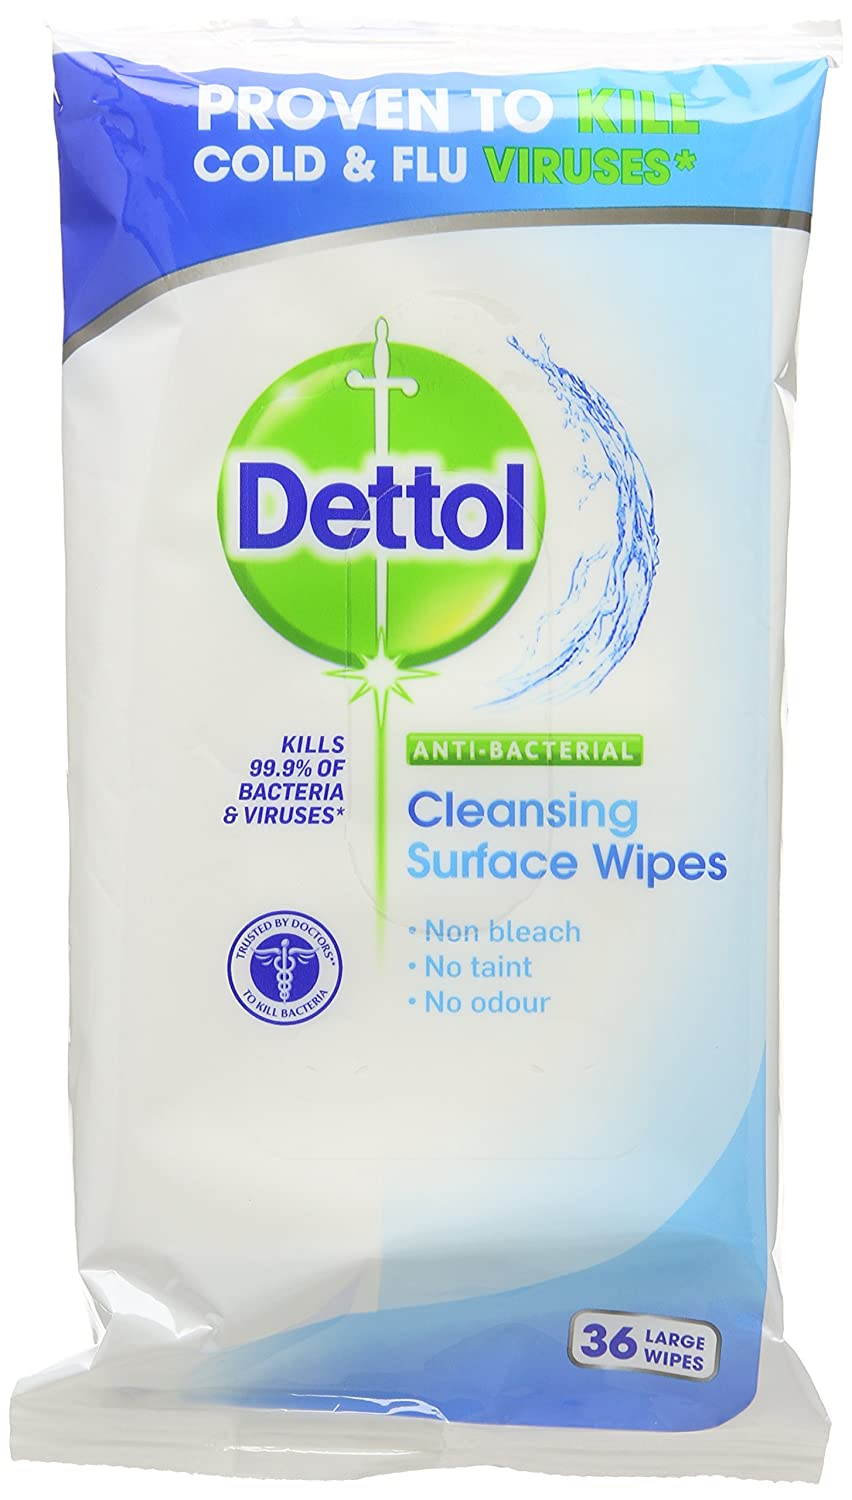 Dettol Anti Bacterial Cleansing Surface Wipes 36 Large Wipes (Pack of 16)